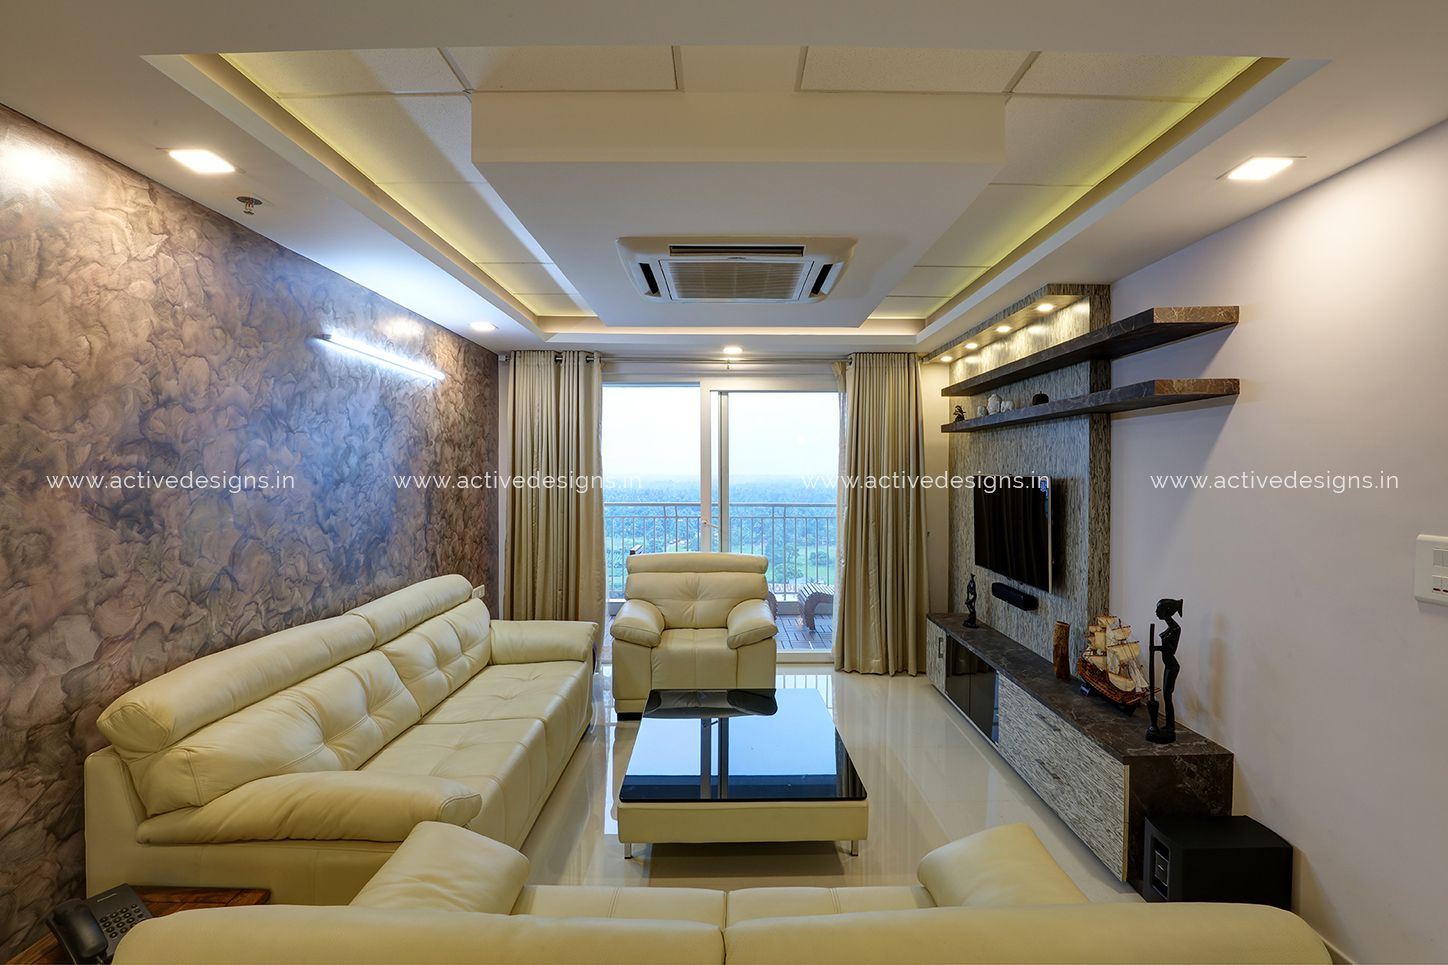 Beautiful Home Interiors Design For Our Beloved Client With